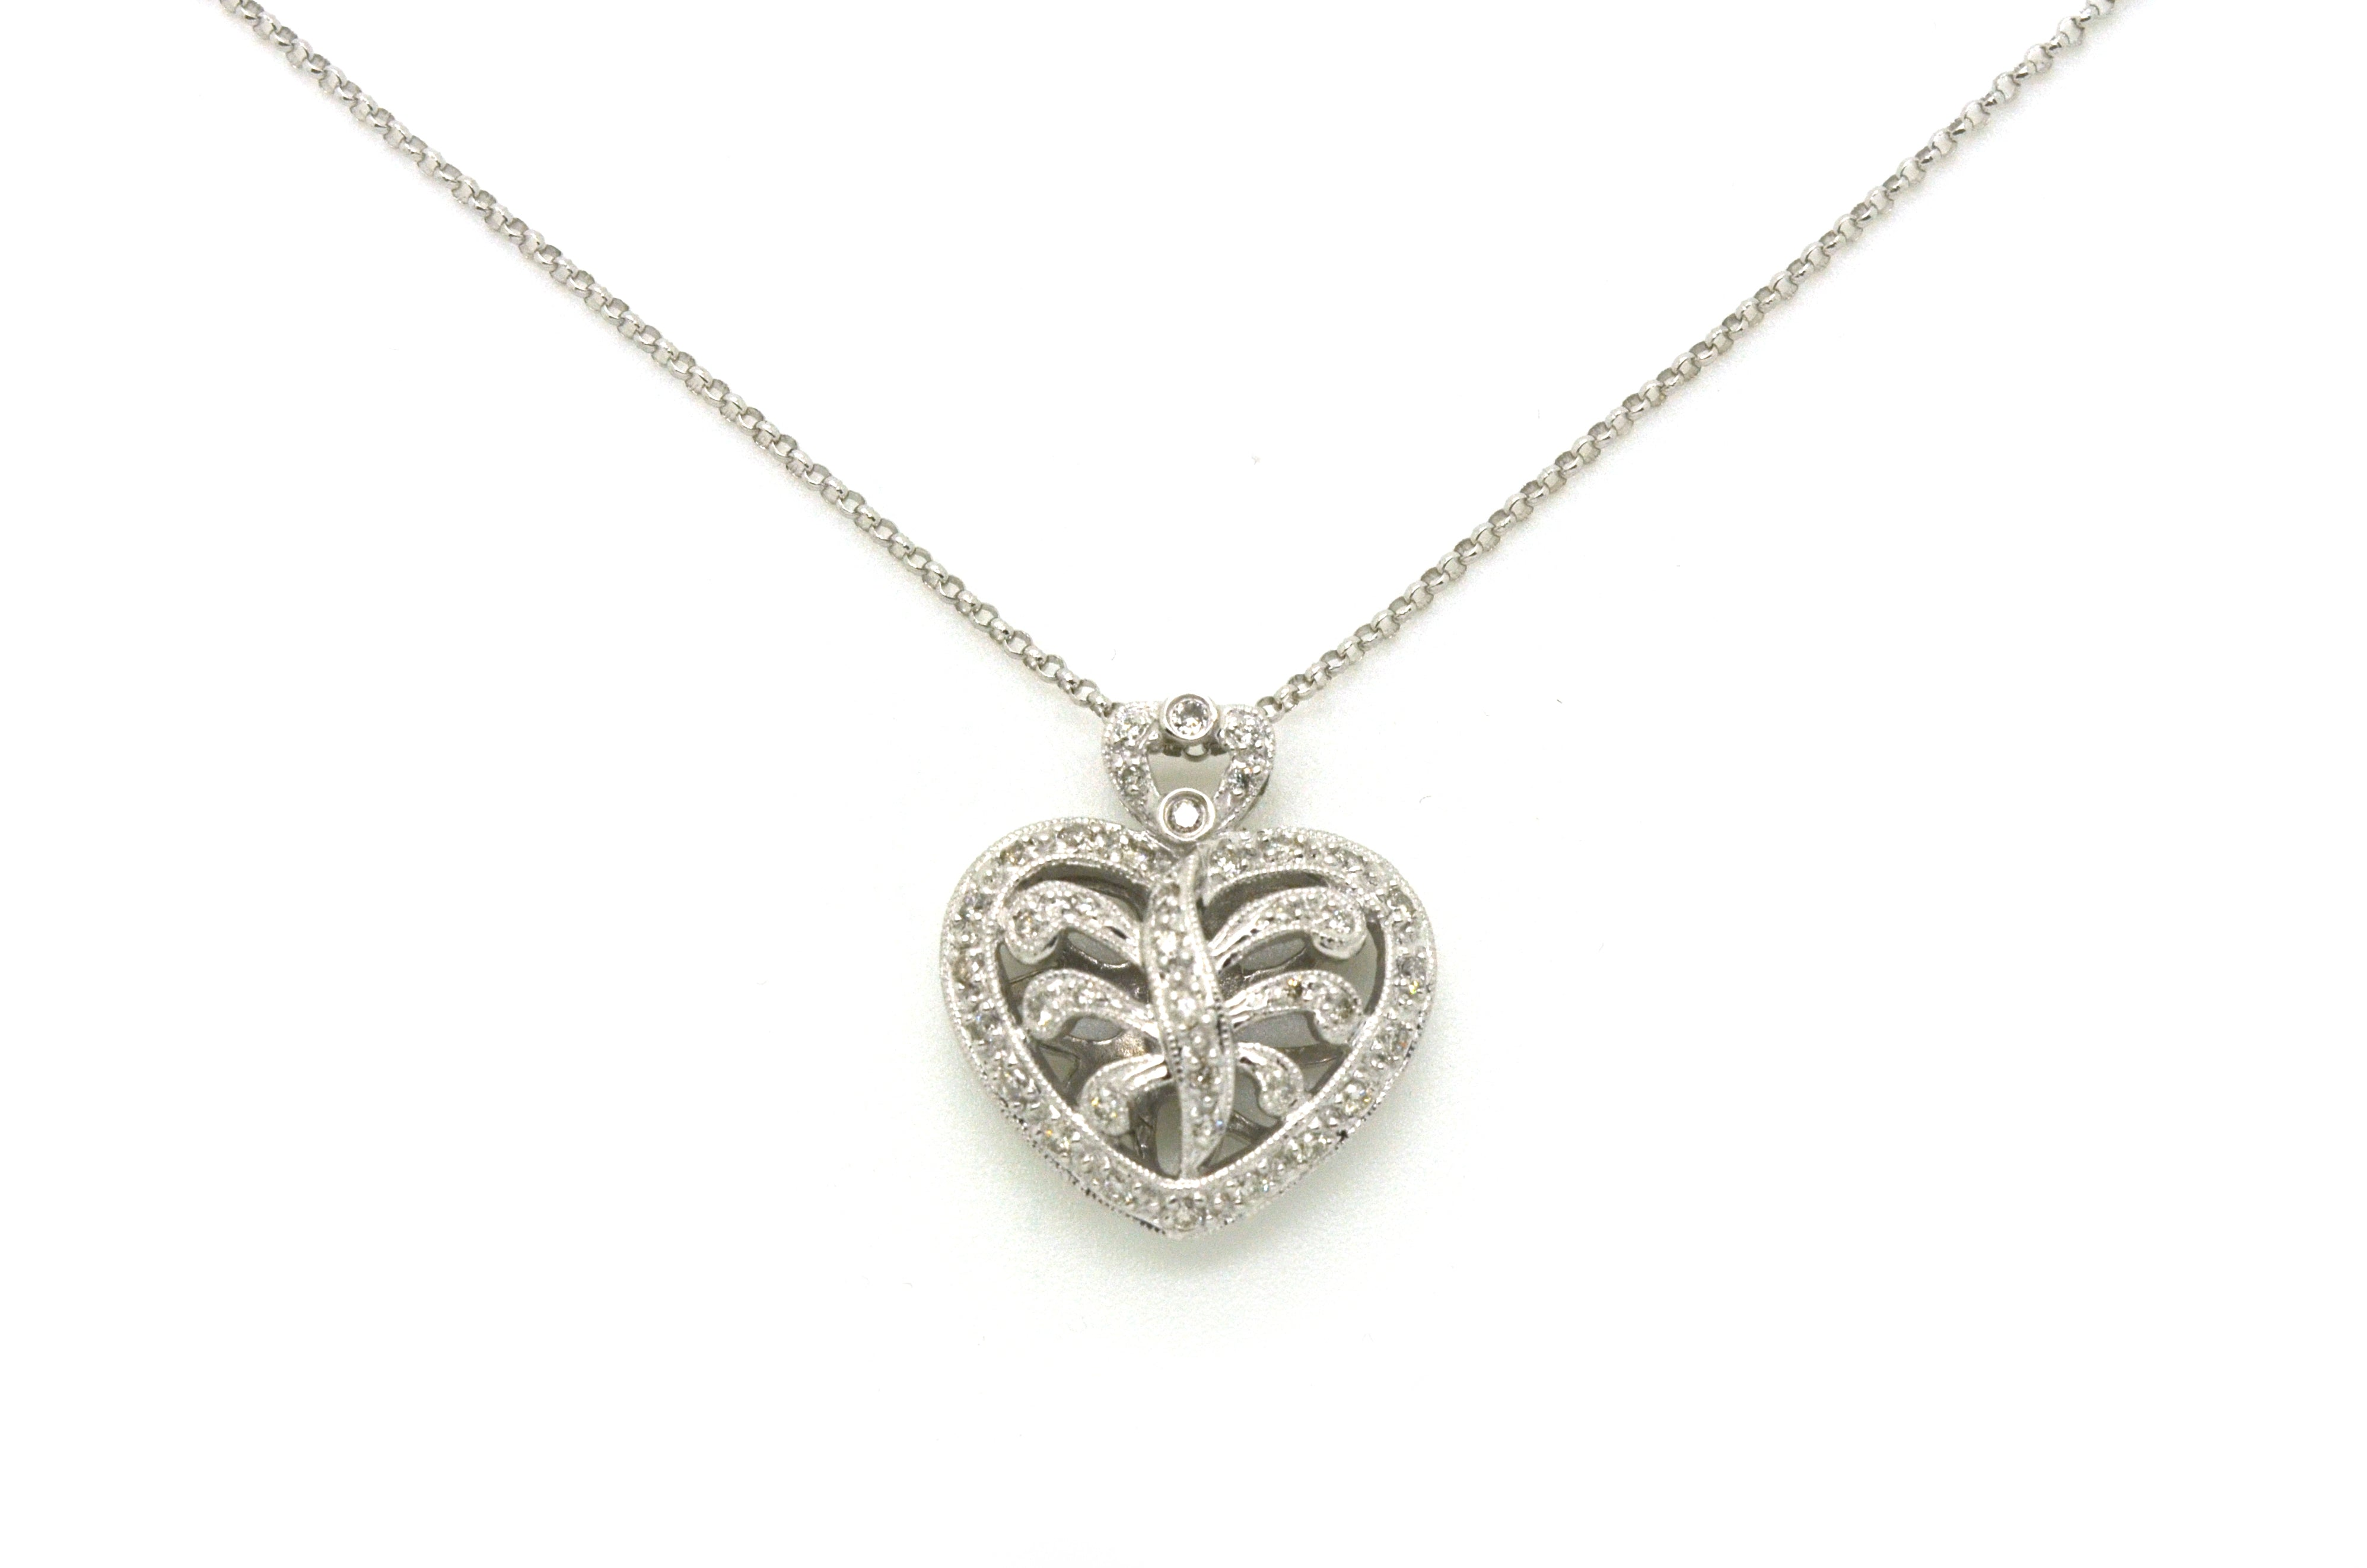 14k White Gold Diamond Filagree Heart Pendant Necklace - .35 ct. tw - 16.5 in.